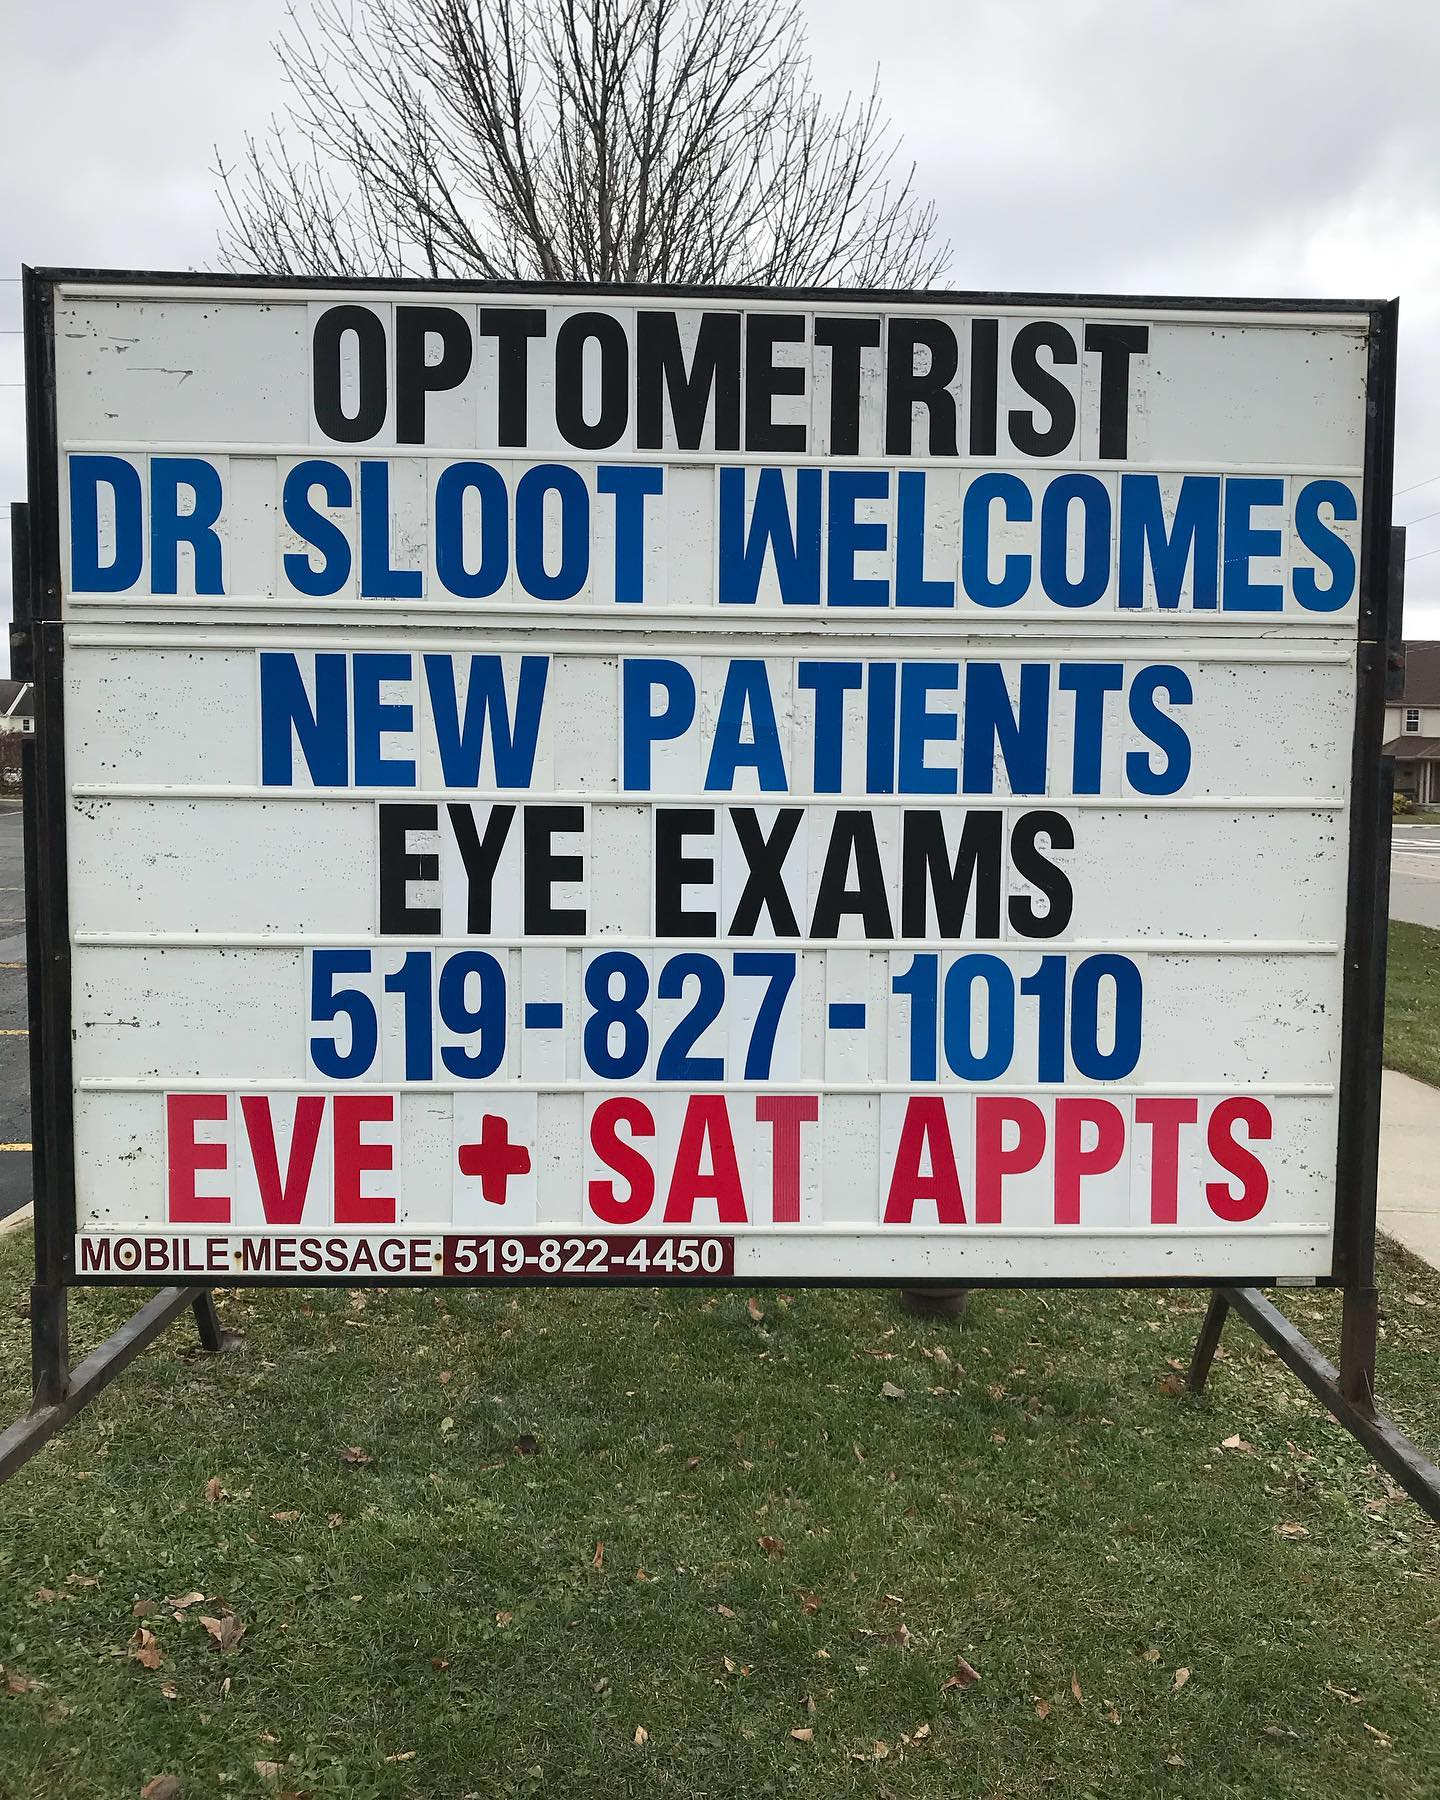 Welcome to Dr Sloot! She is currently taking new patients at both of our offices. She has evening and weekend availability. Call to book your exams today! #eyepractice #rockwoodoptometrist #guelphoptometrist #rockwoodoptometry #guelphoptometry #newoptometrist #newpatientswelcome